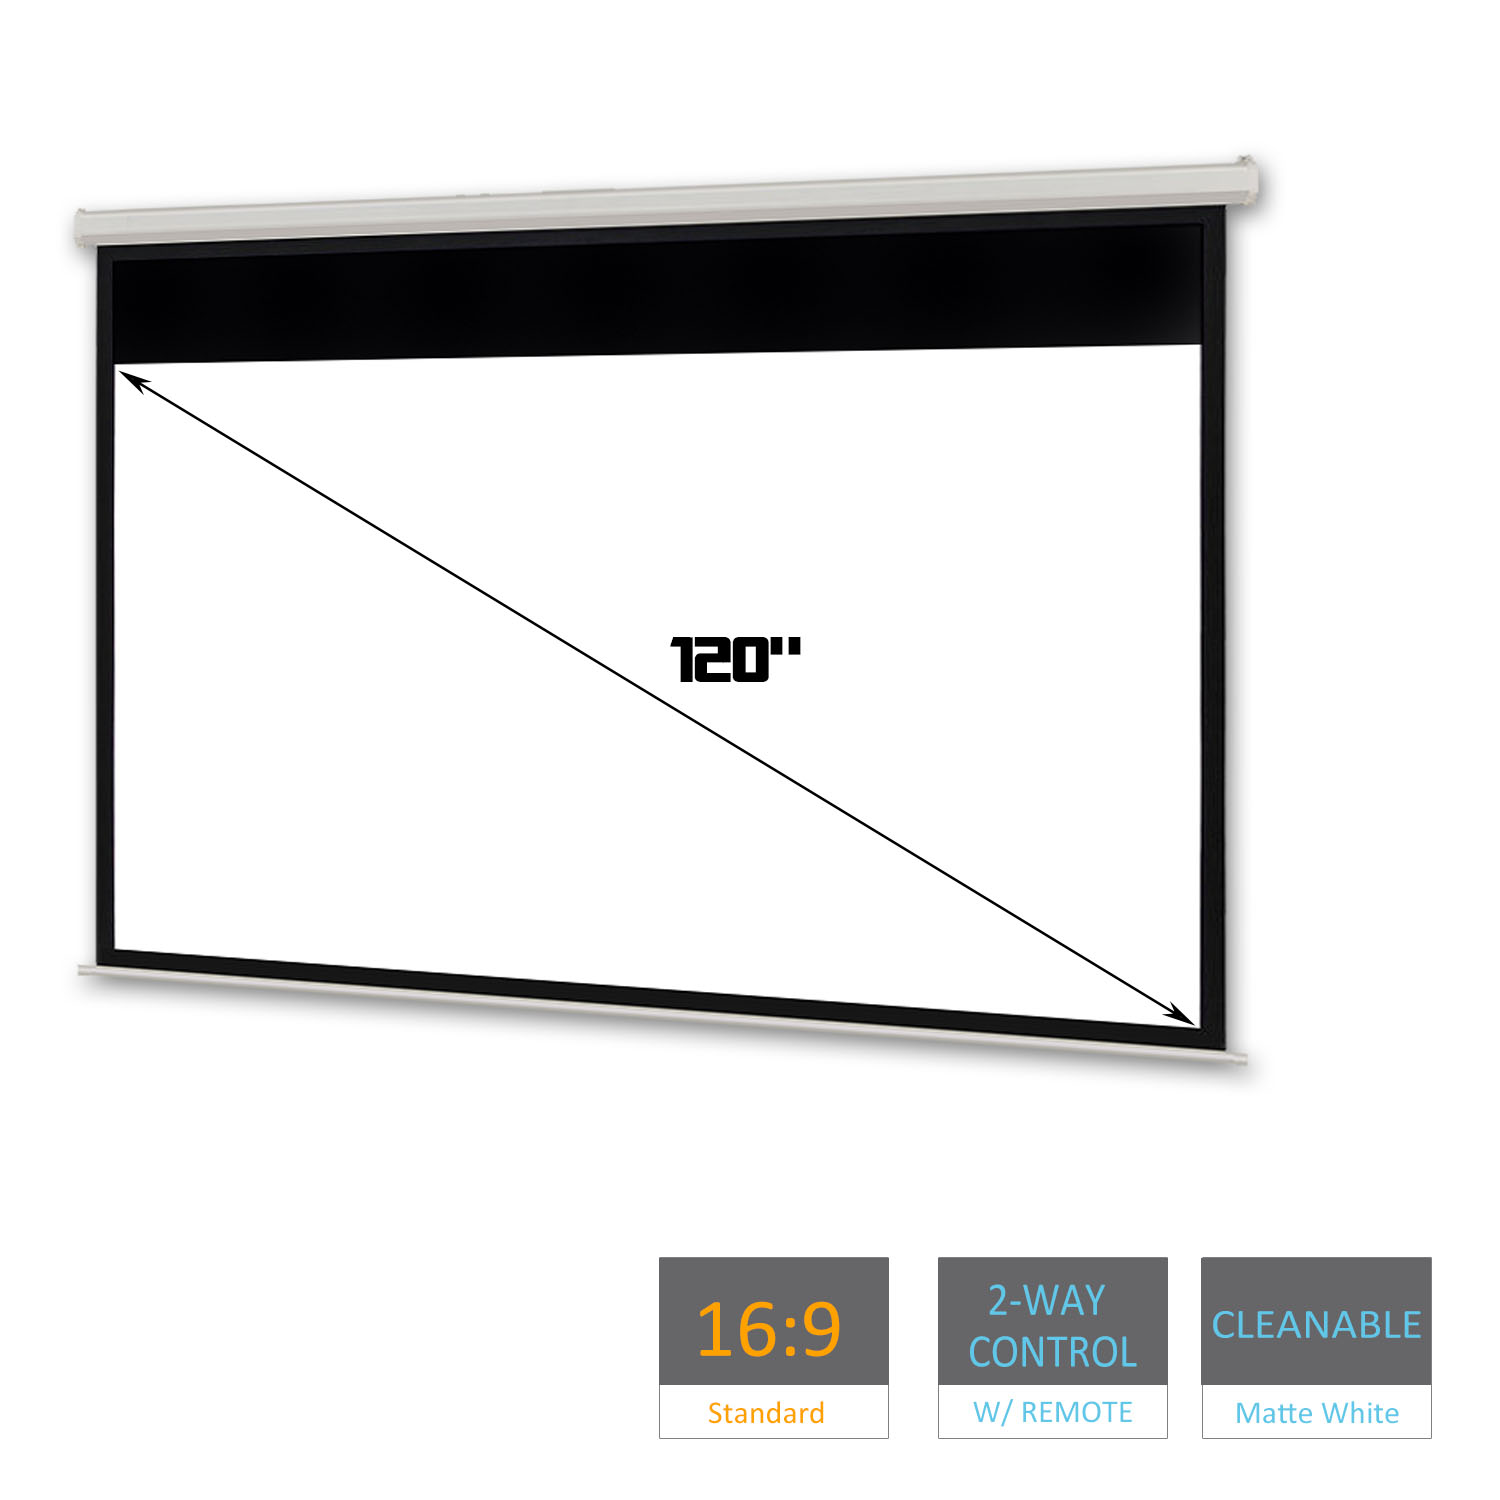 120 Electric Motorised Projector Screen Home Theatre Hd